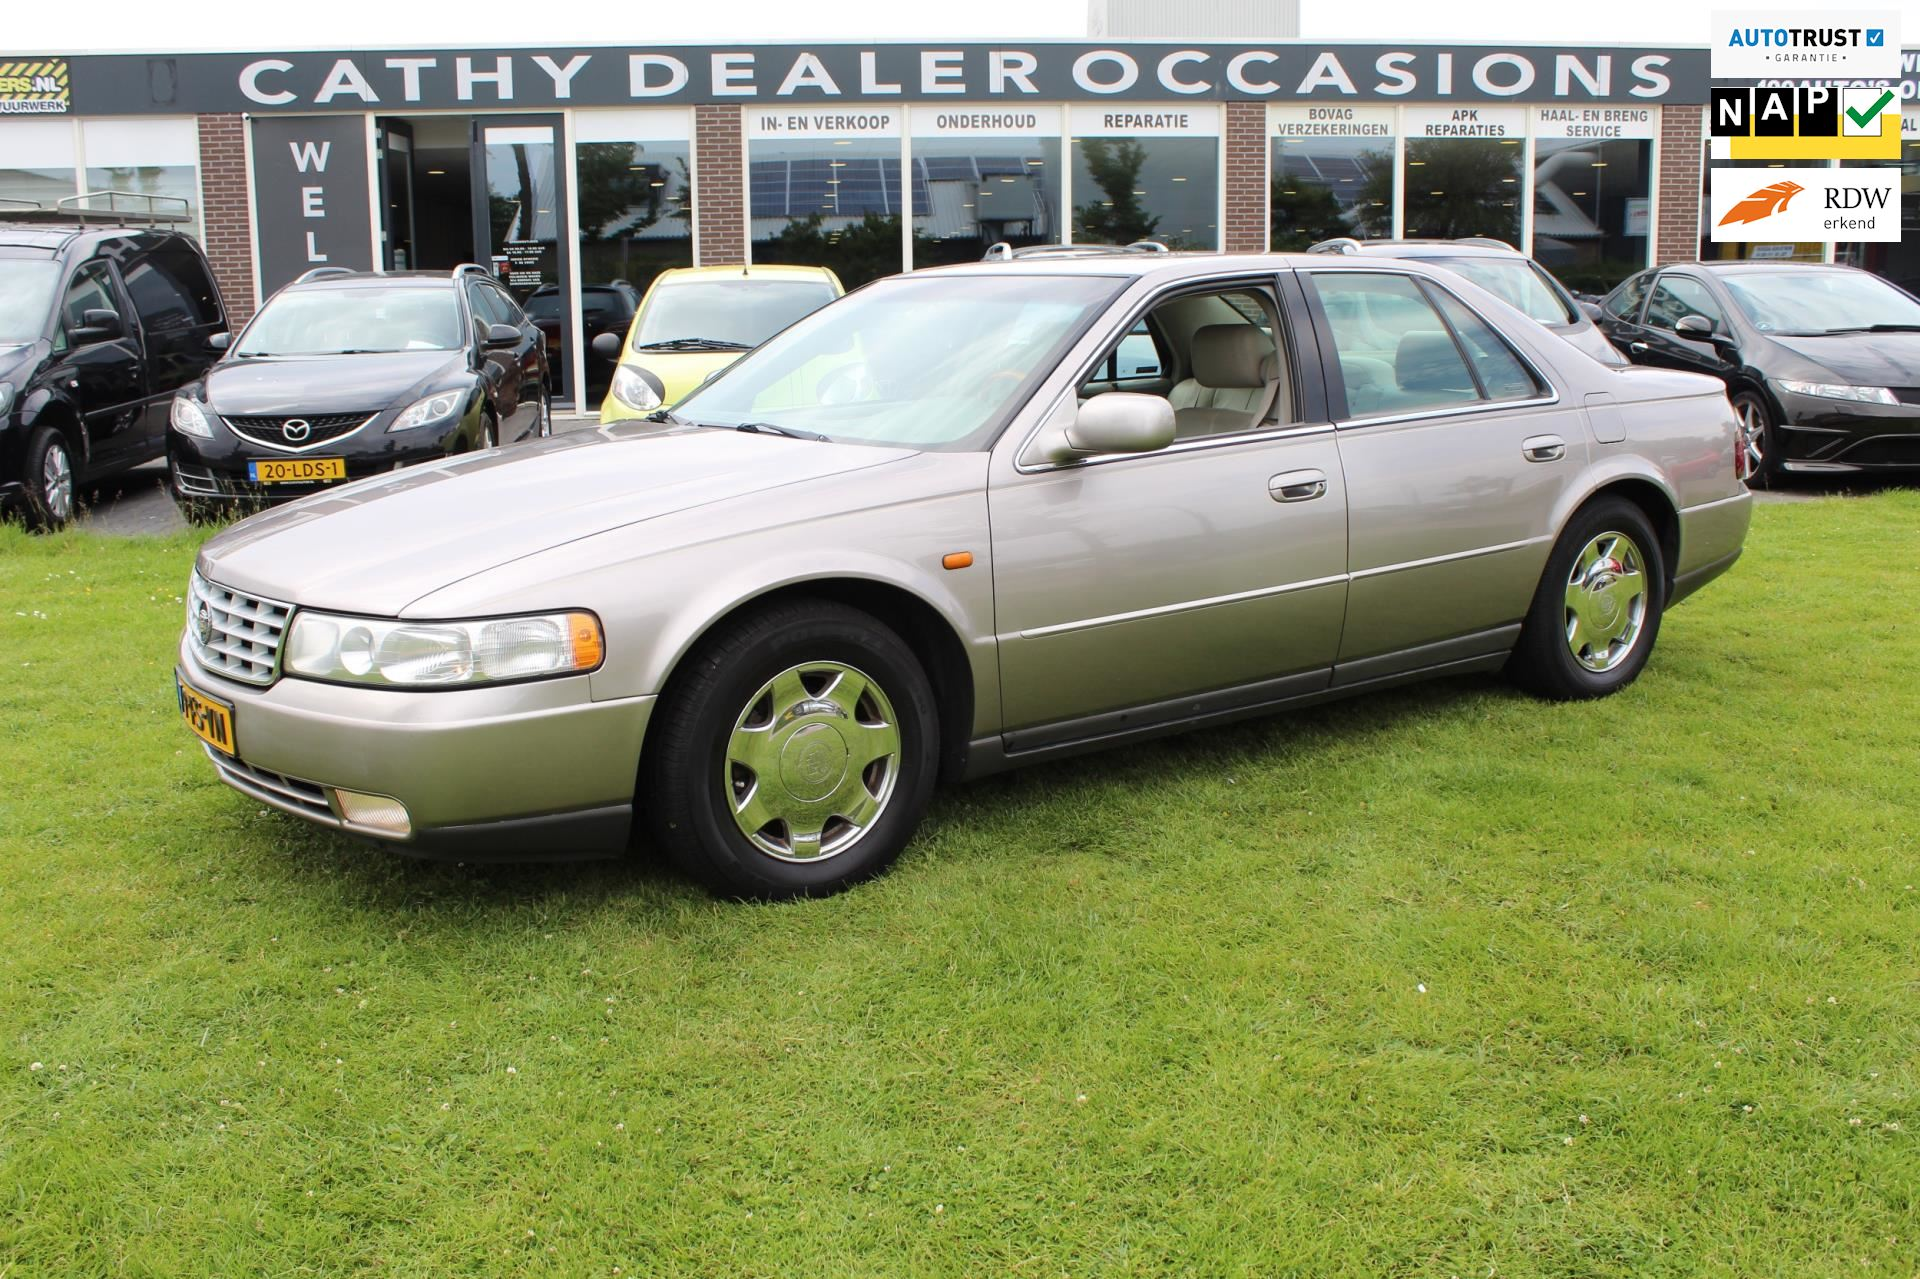 Cadillac Seville occasion - Cathy Dealer Occasions